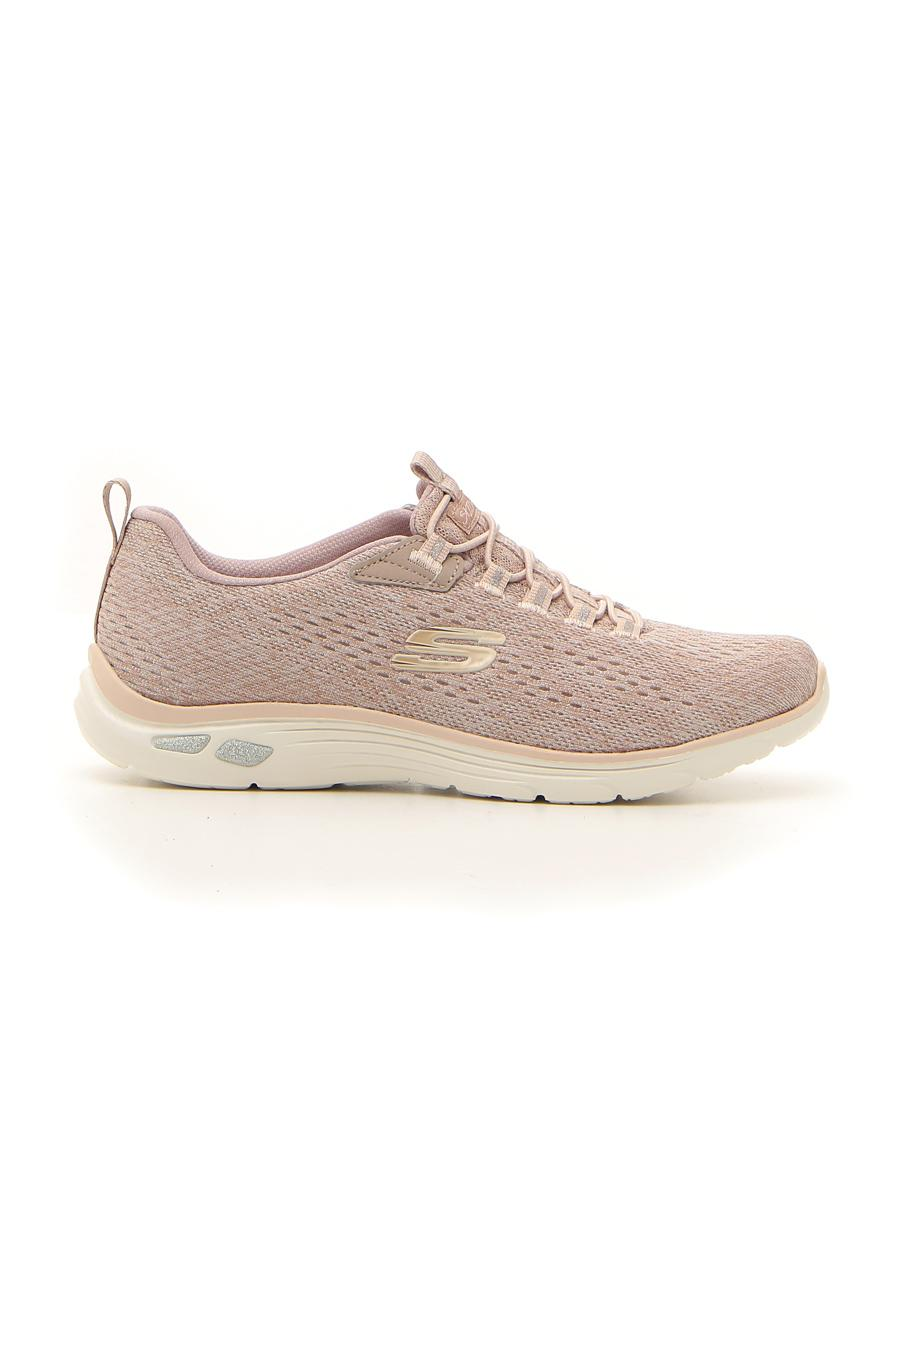 FITNESS SKECHERS LIVELY WIND donna rosa | Pittarello